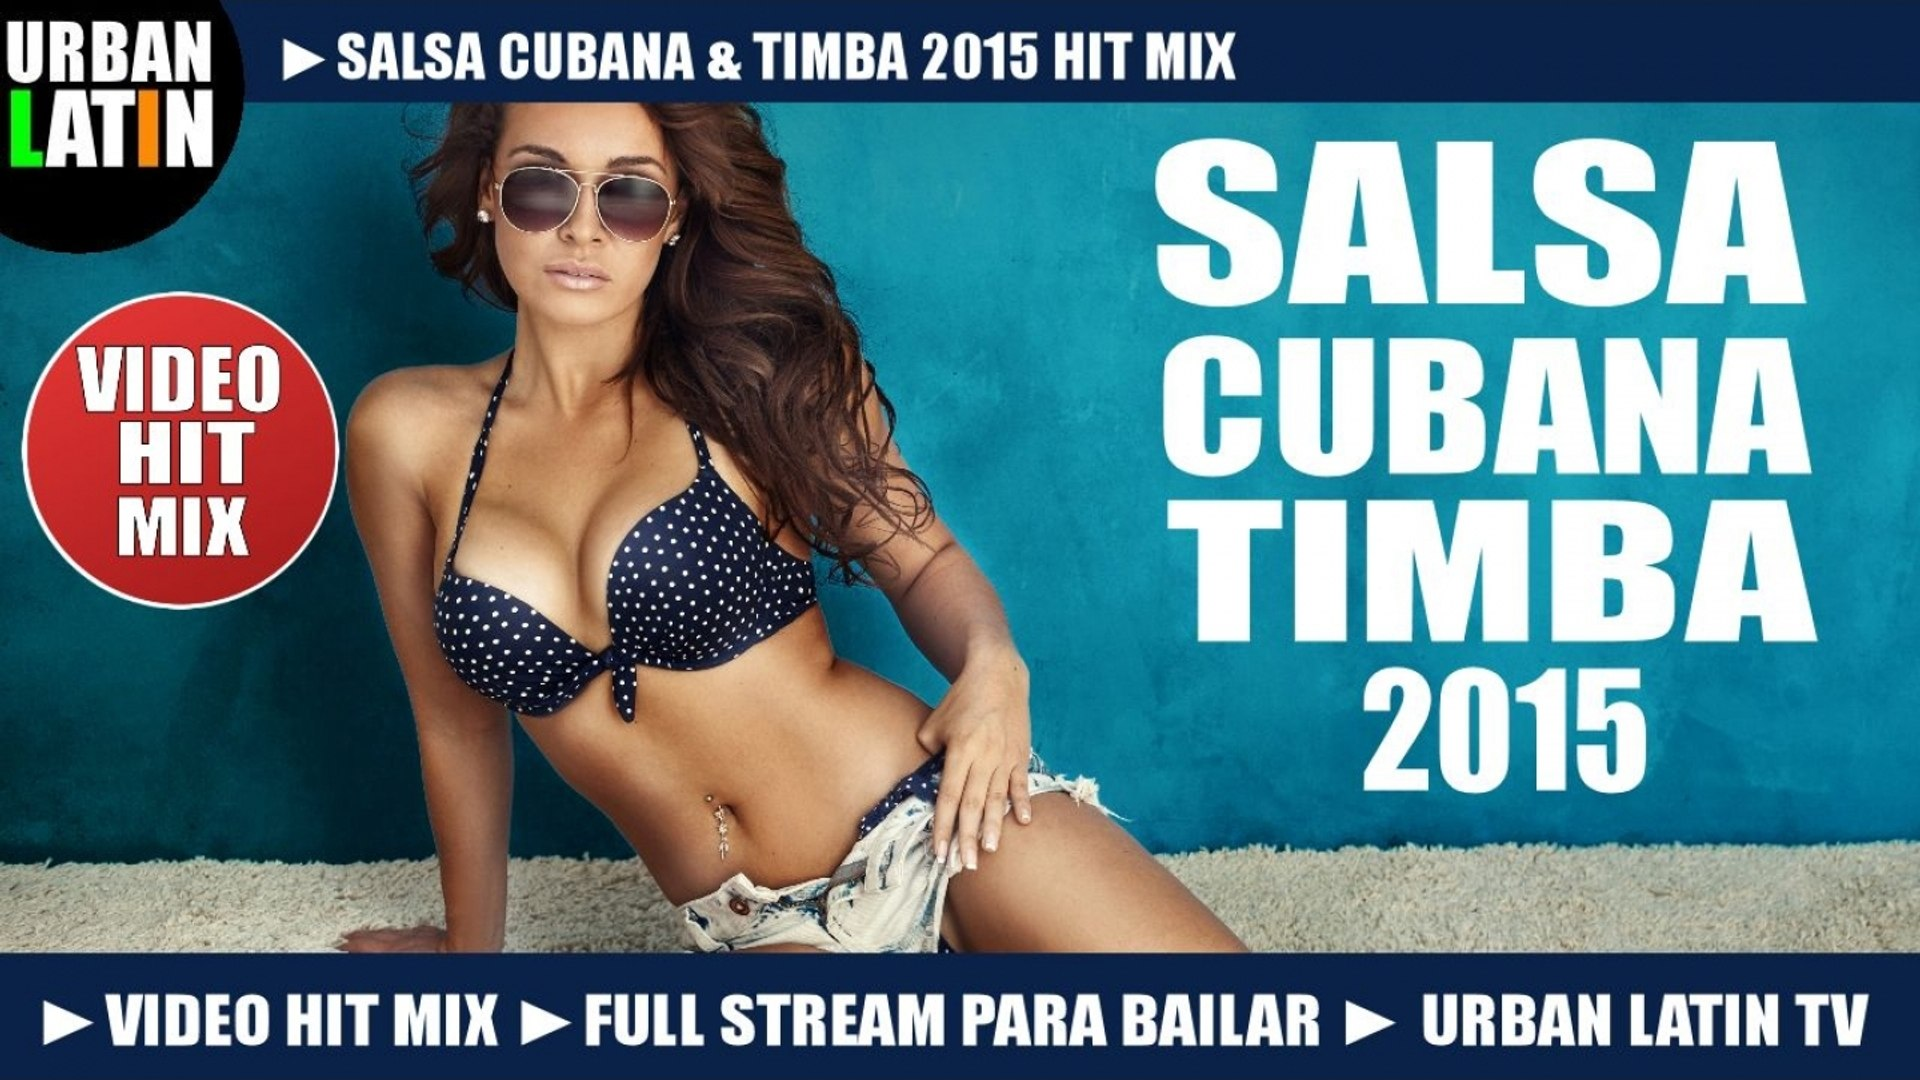 SALSA CUBANA 2015 ► TIMBA HITS 2015 ► VIDEO HIT MIX ► LO MEJOR DE CUBA 2015